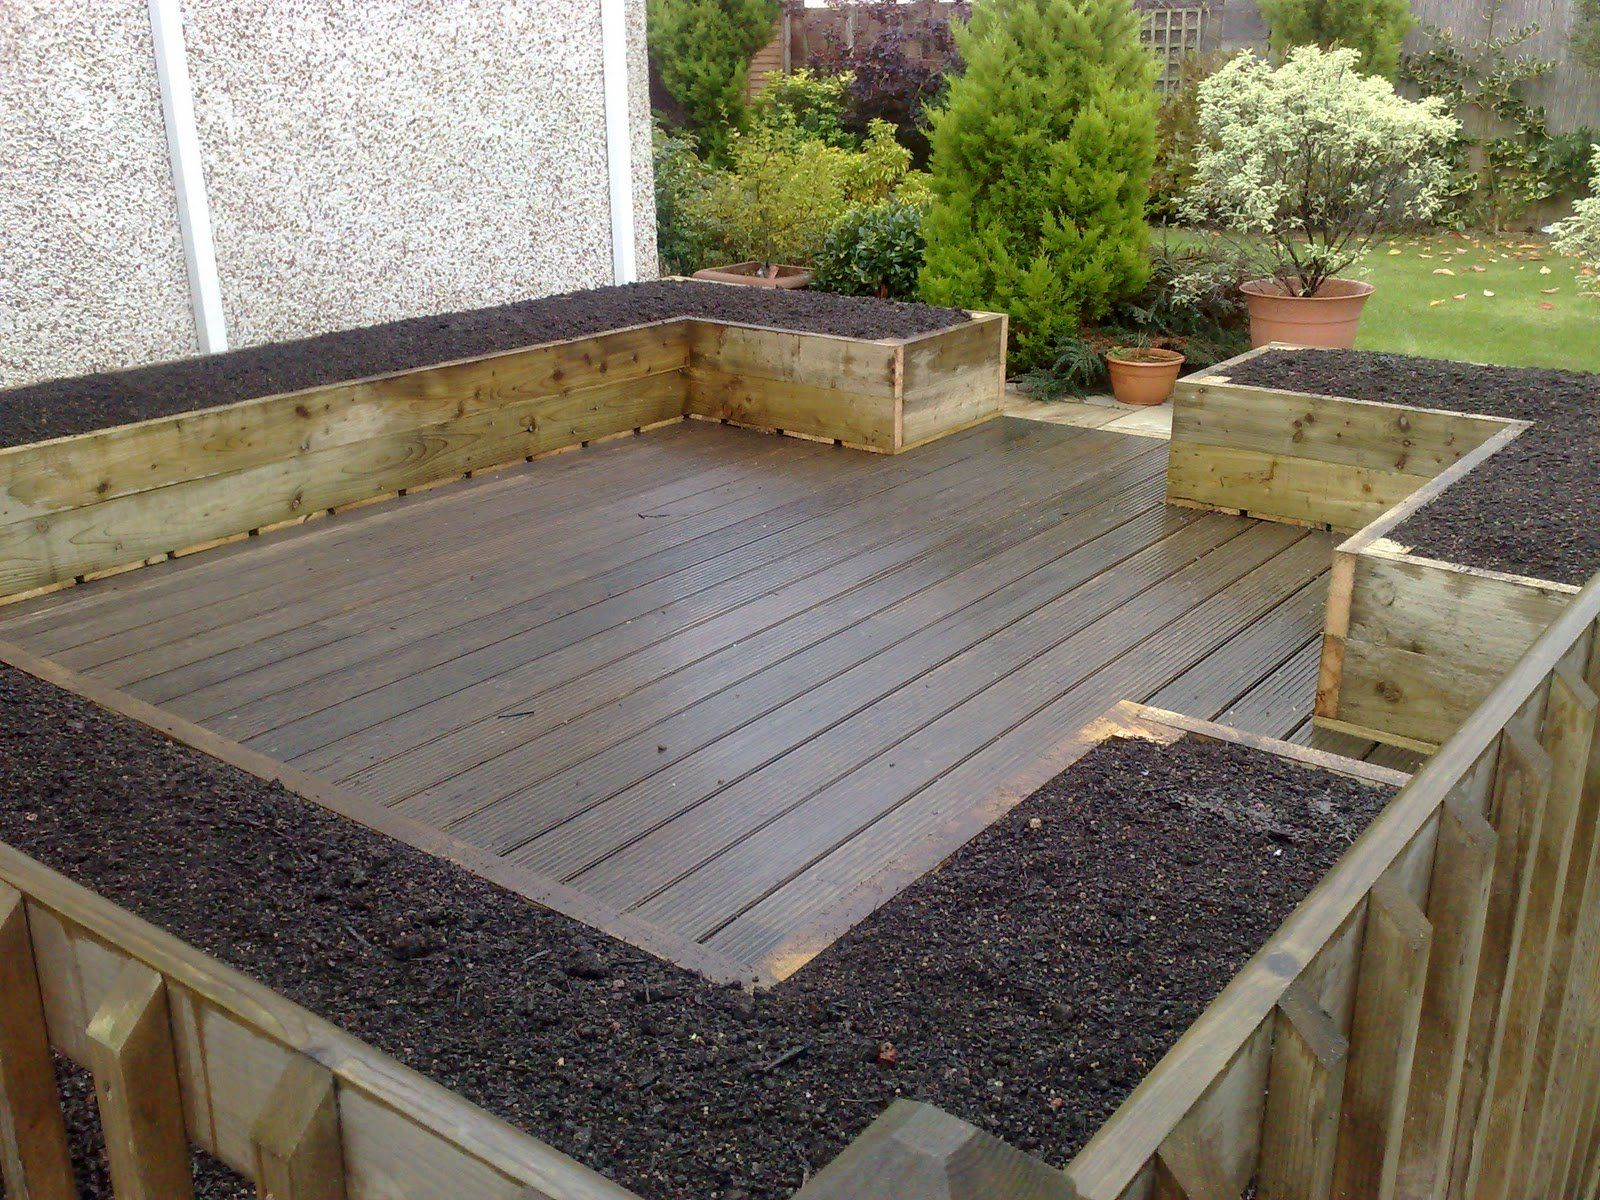 Garden And Patio Deck And Patio With Hardwood Floor Tiles And